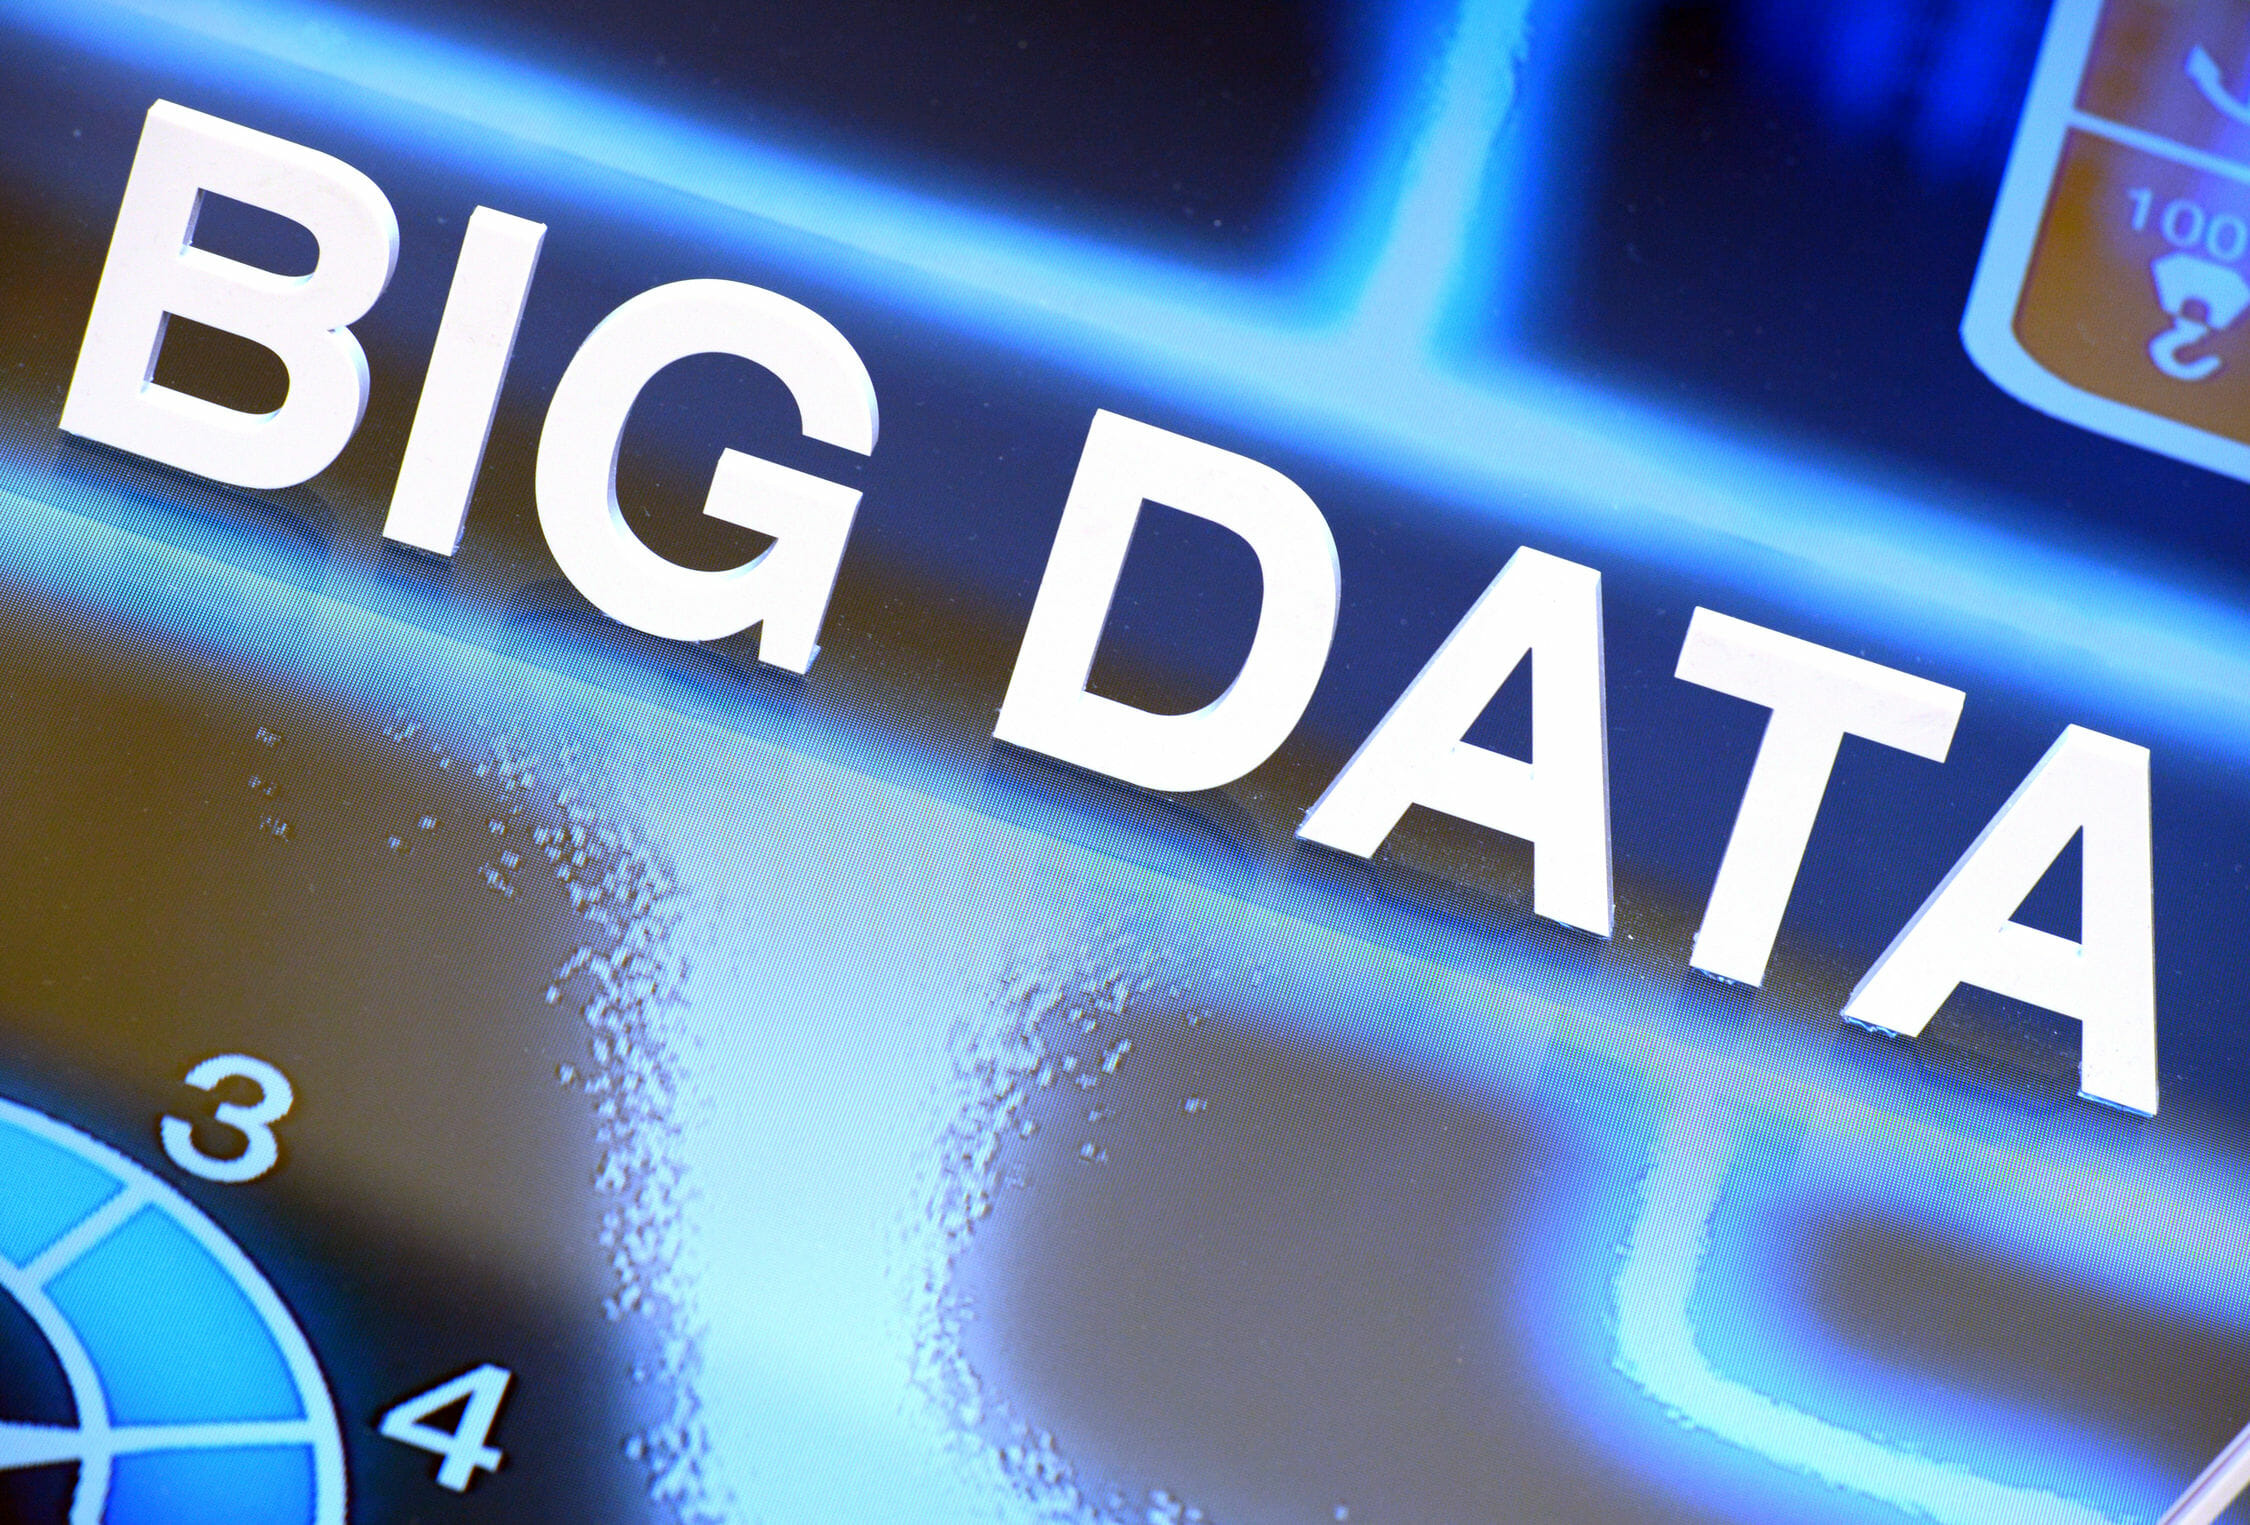 Big Data auf der CeBIT.